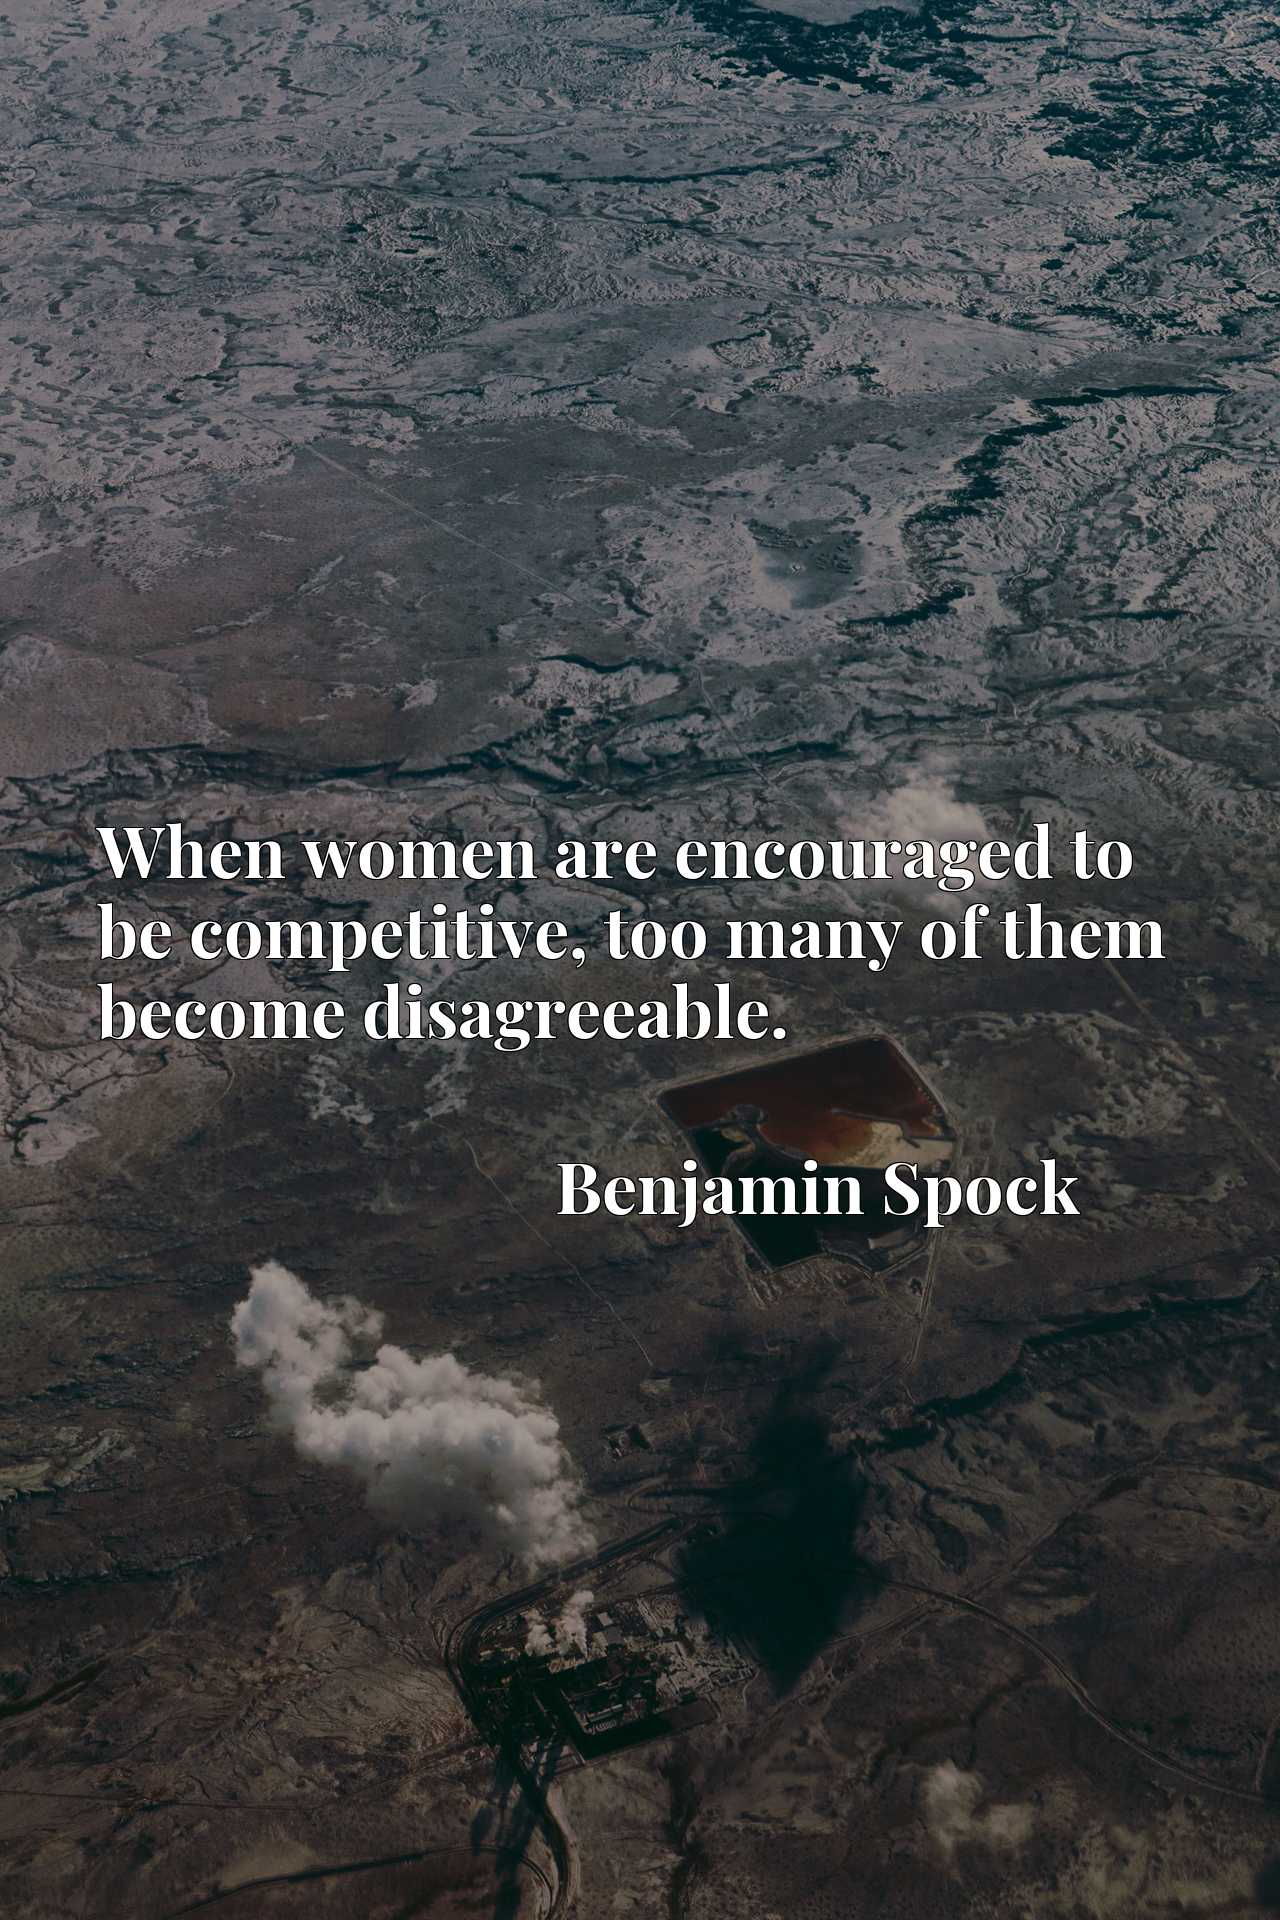 Quote Picture :When women are encouraged to be competitive, too many of them become disagreeable.